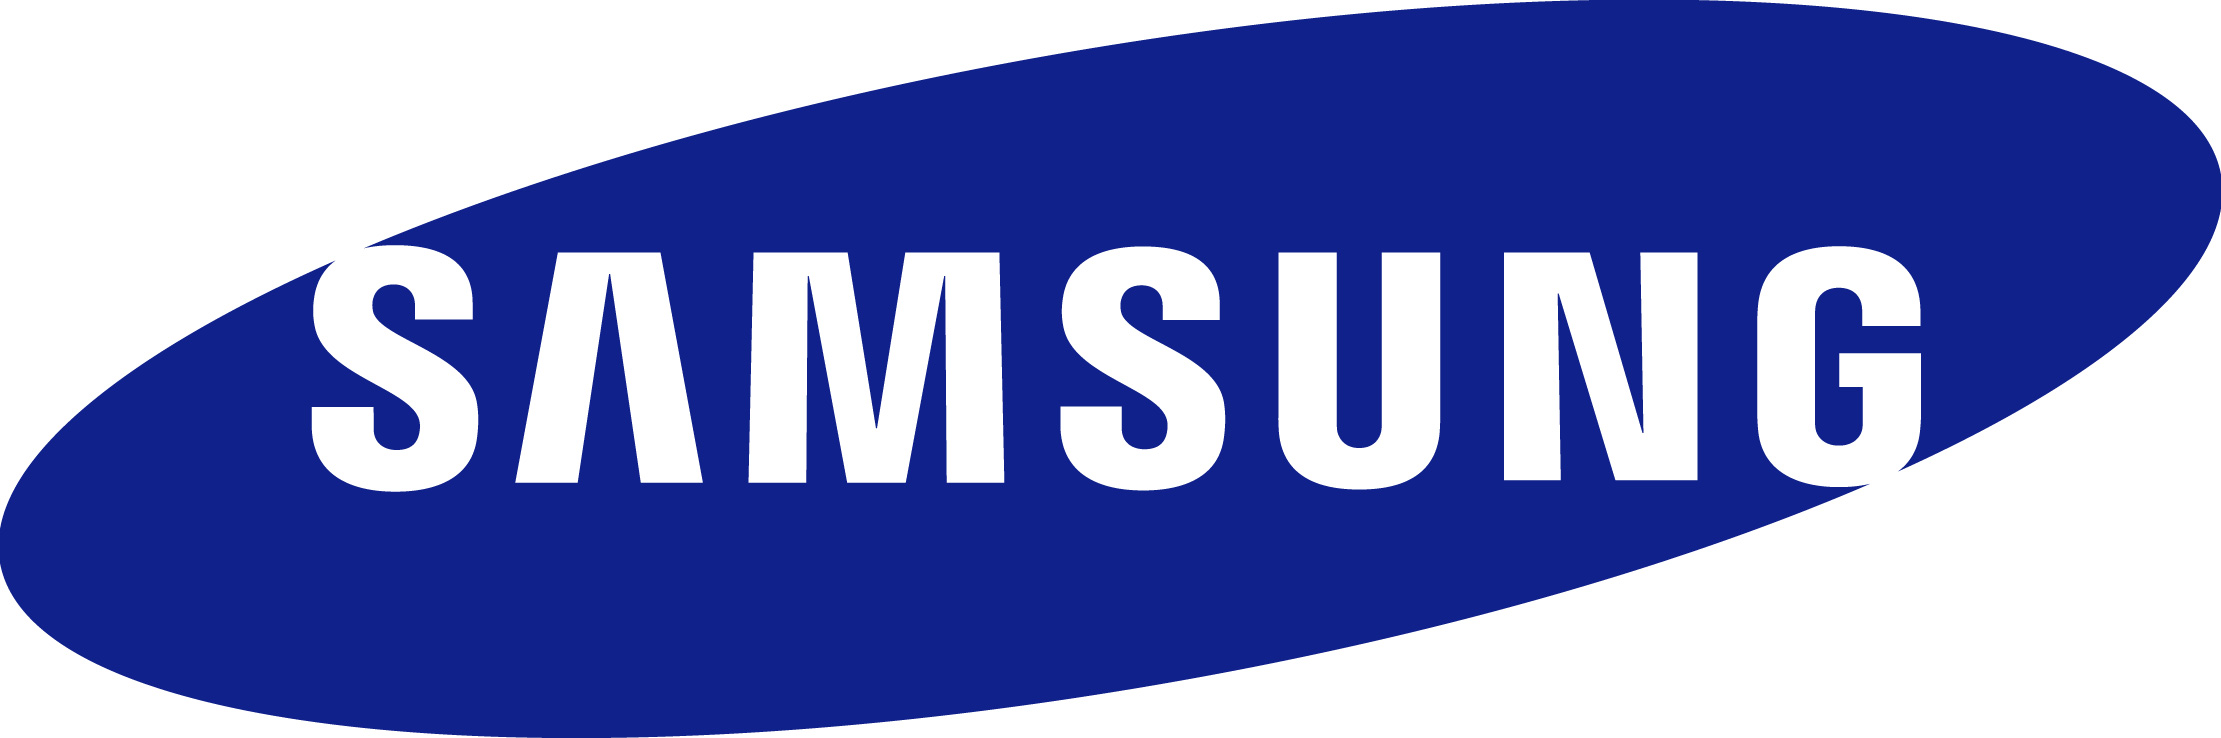 http://www.technologybloggers.org/wp-content/uploads/2012/03/Samsung-Logo.jpg